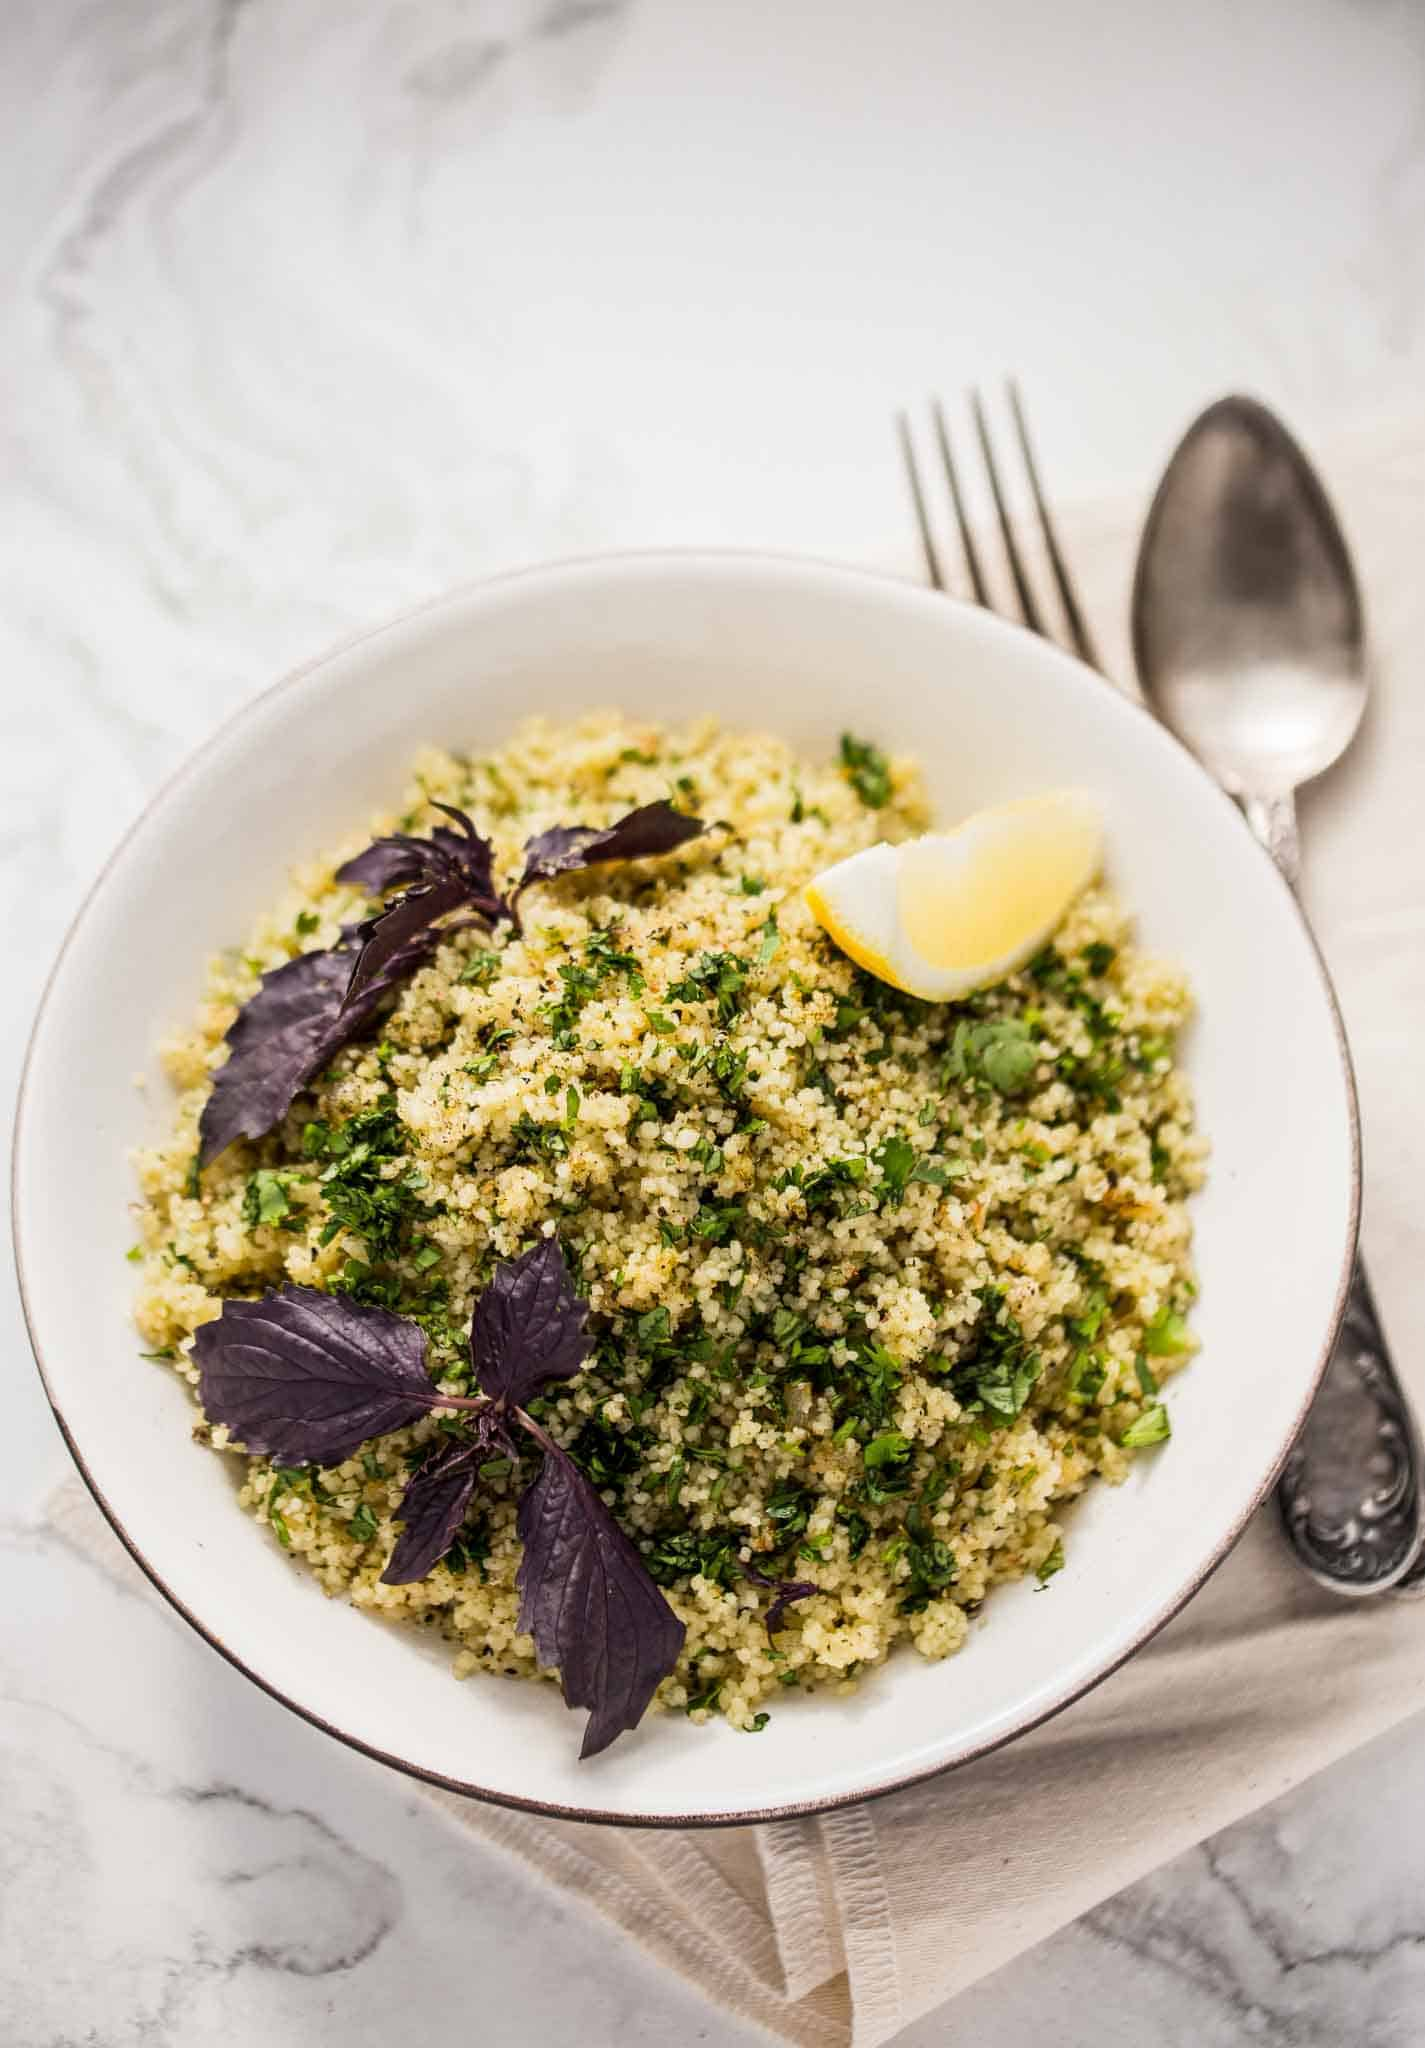 Perfectly cooked couscous can be a light snack by itself or a side dish for many other dishes like stews and curries. This incredibly easy couscous recipe takes less than 15 minutes to cook and one sure to bookmark as a favourite.